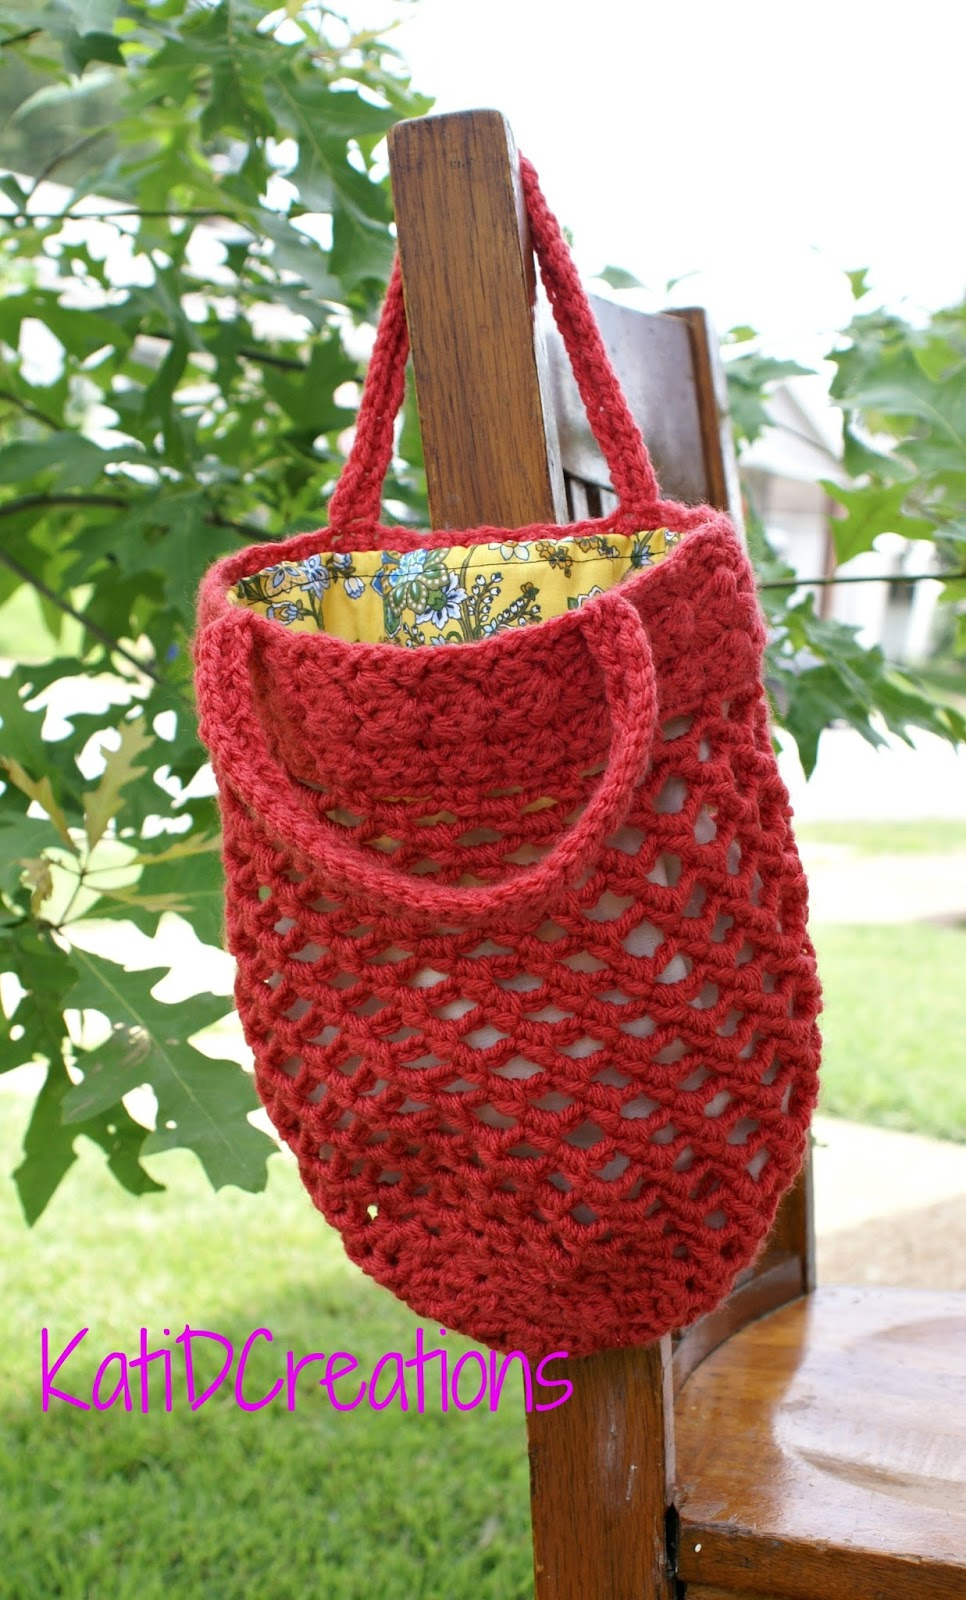 Crochet Patterns For Beach Bag : Fiber Flux: Beautiful Beach Bags! 16 Free Crochet Patterns...